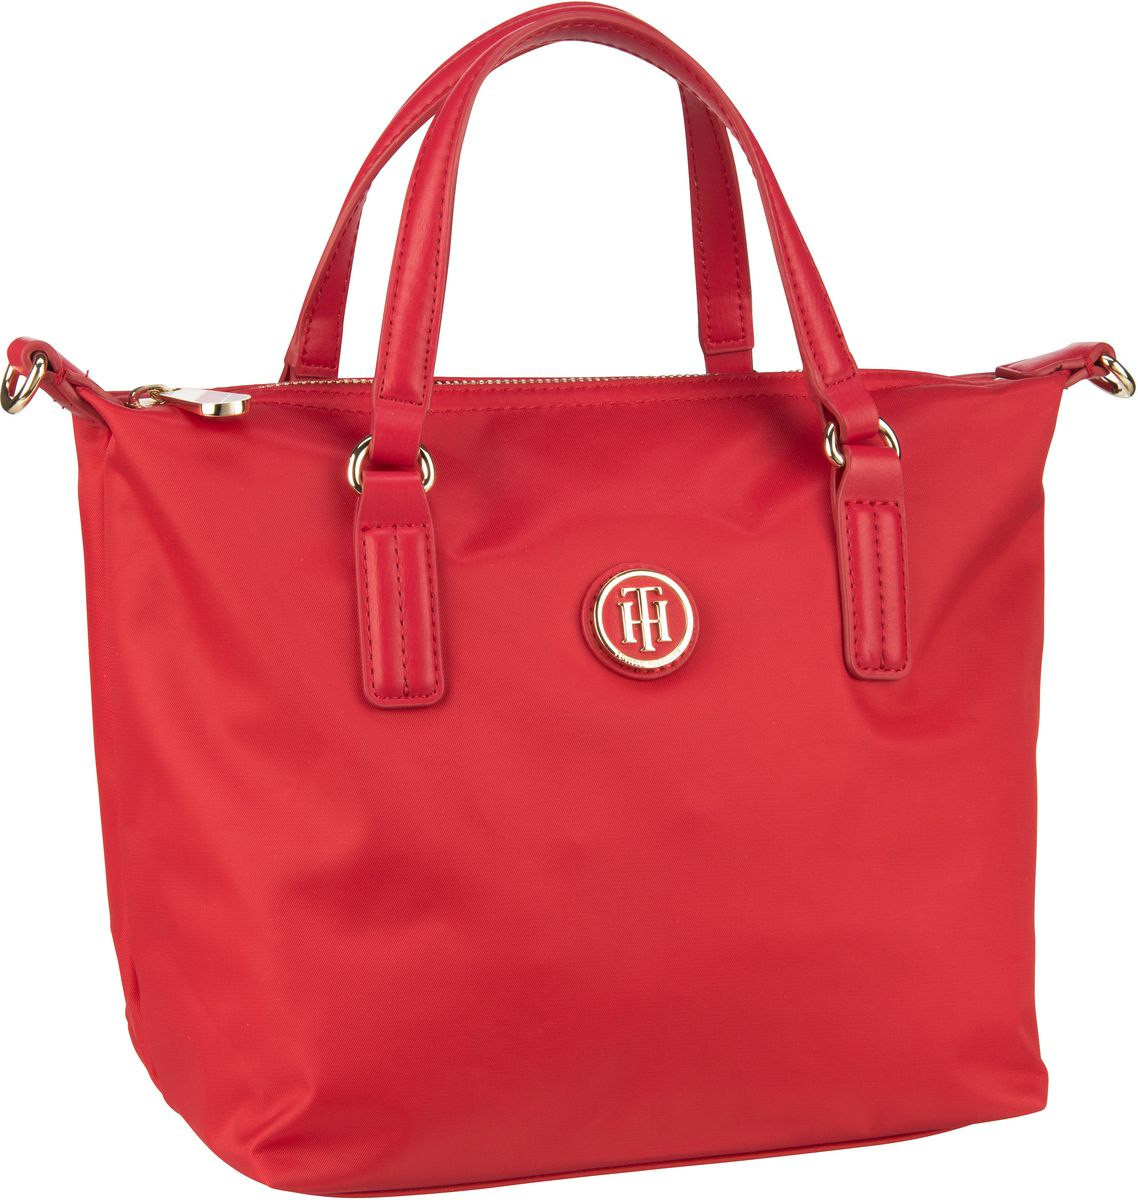 Handtasche Poppy Small Tote 6407 Tommy Red